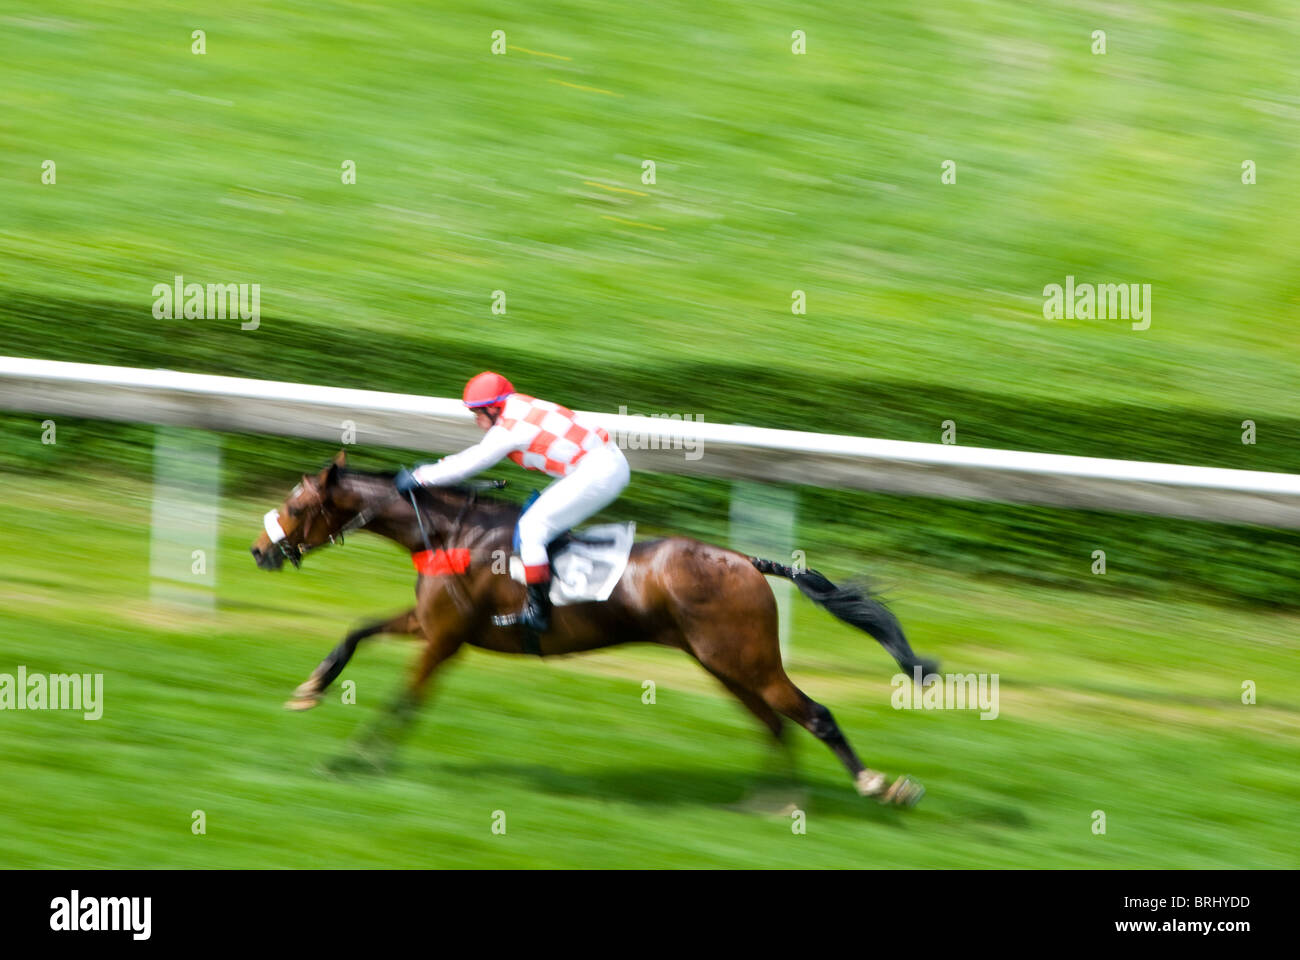 jockey on horse sprinting for victory at a horse race - Stock Image